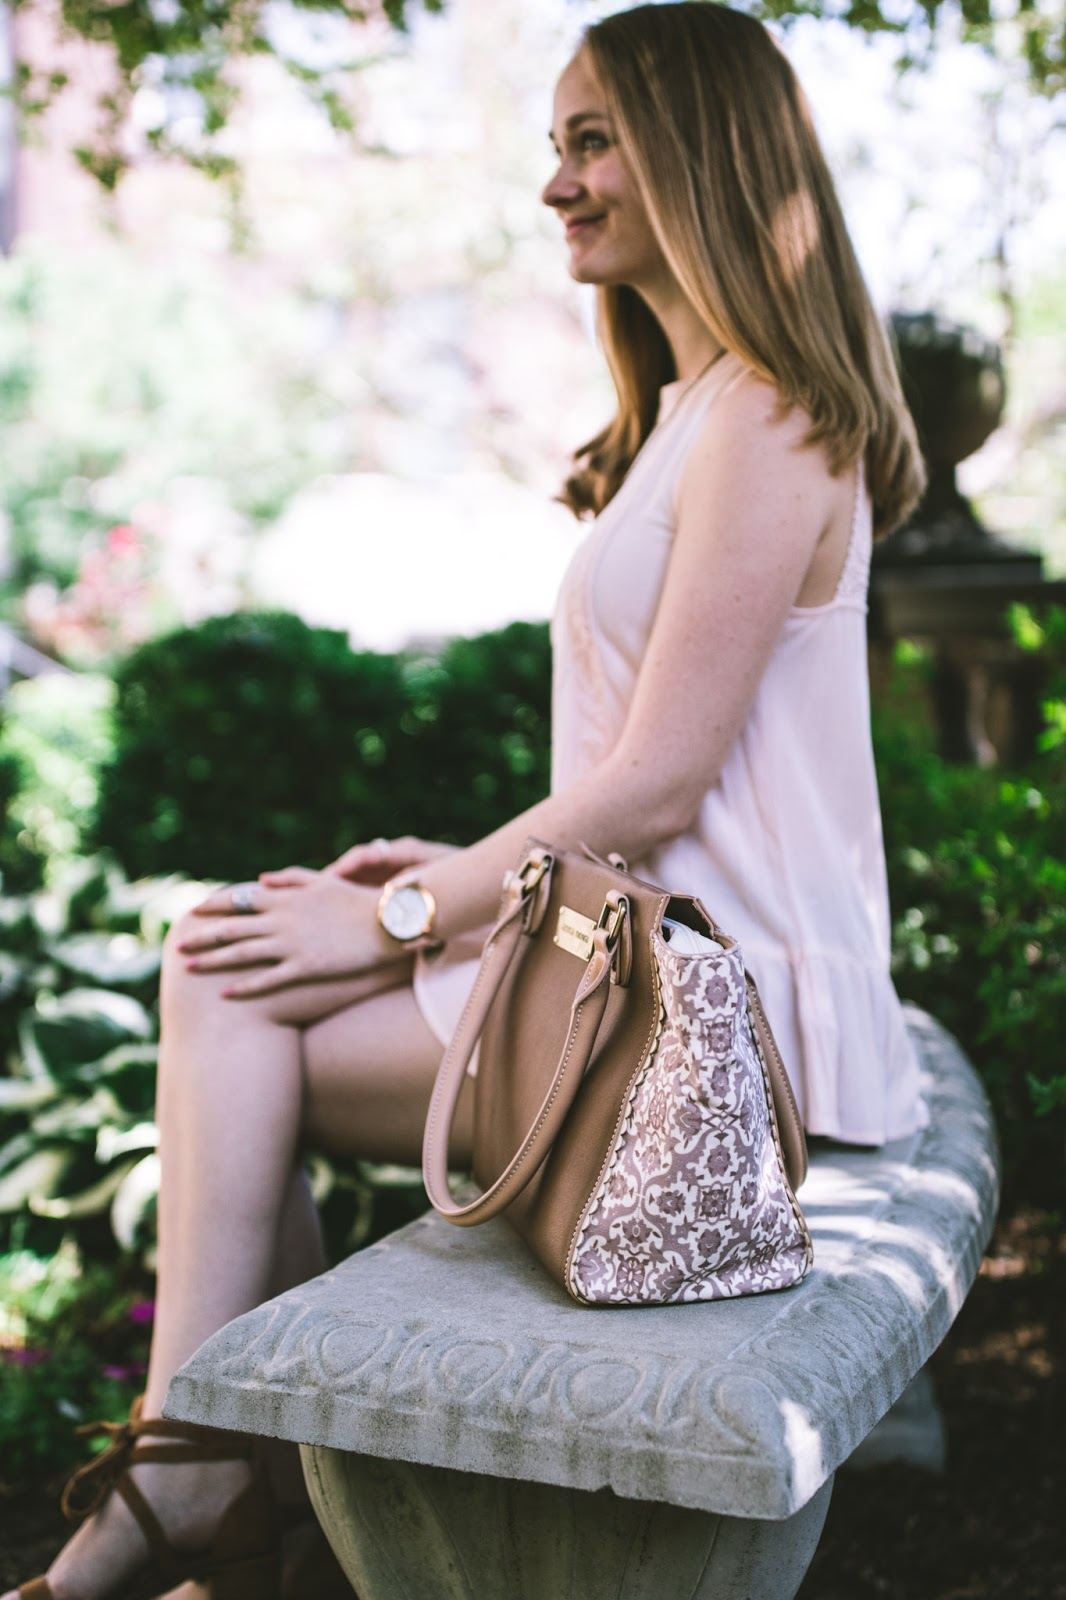 10 Reasons Accessories are Underrated